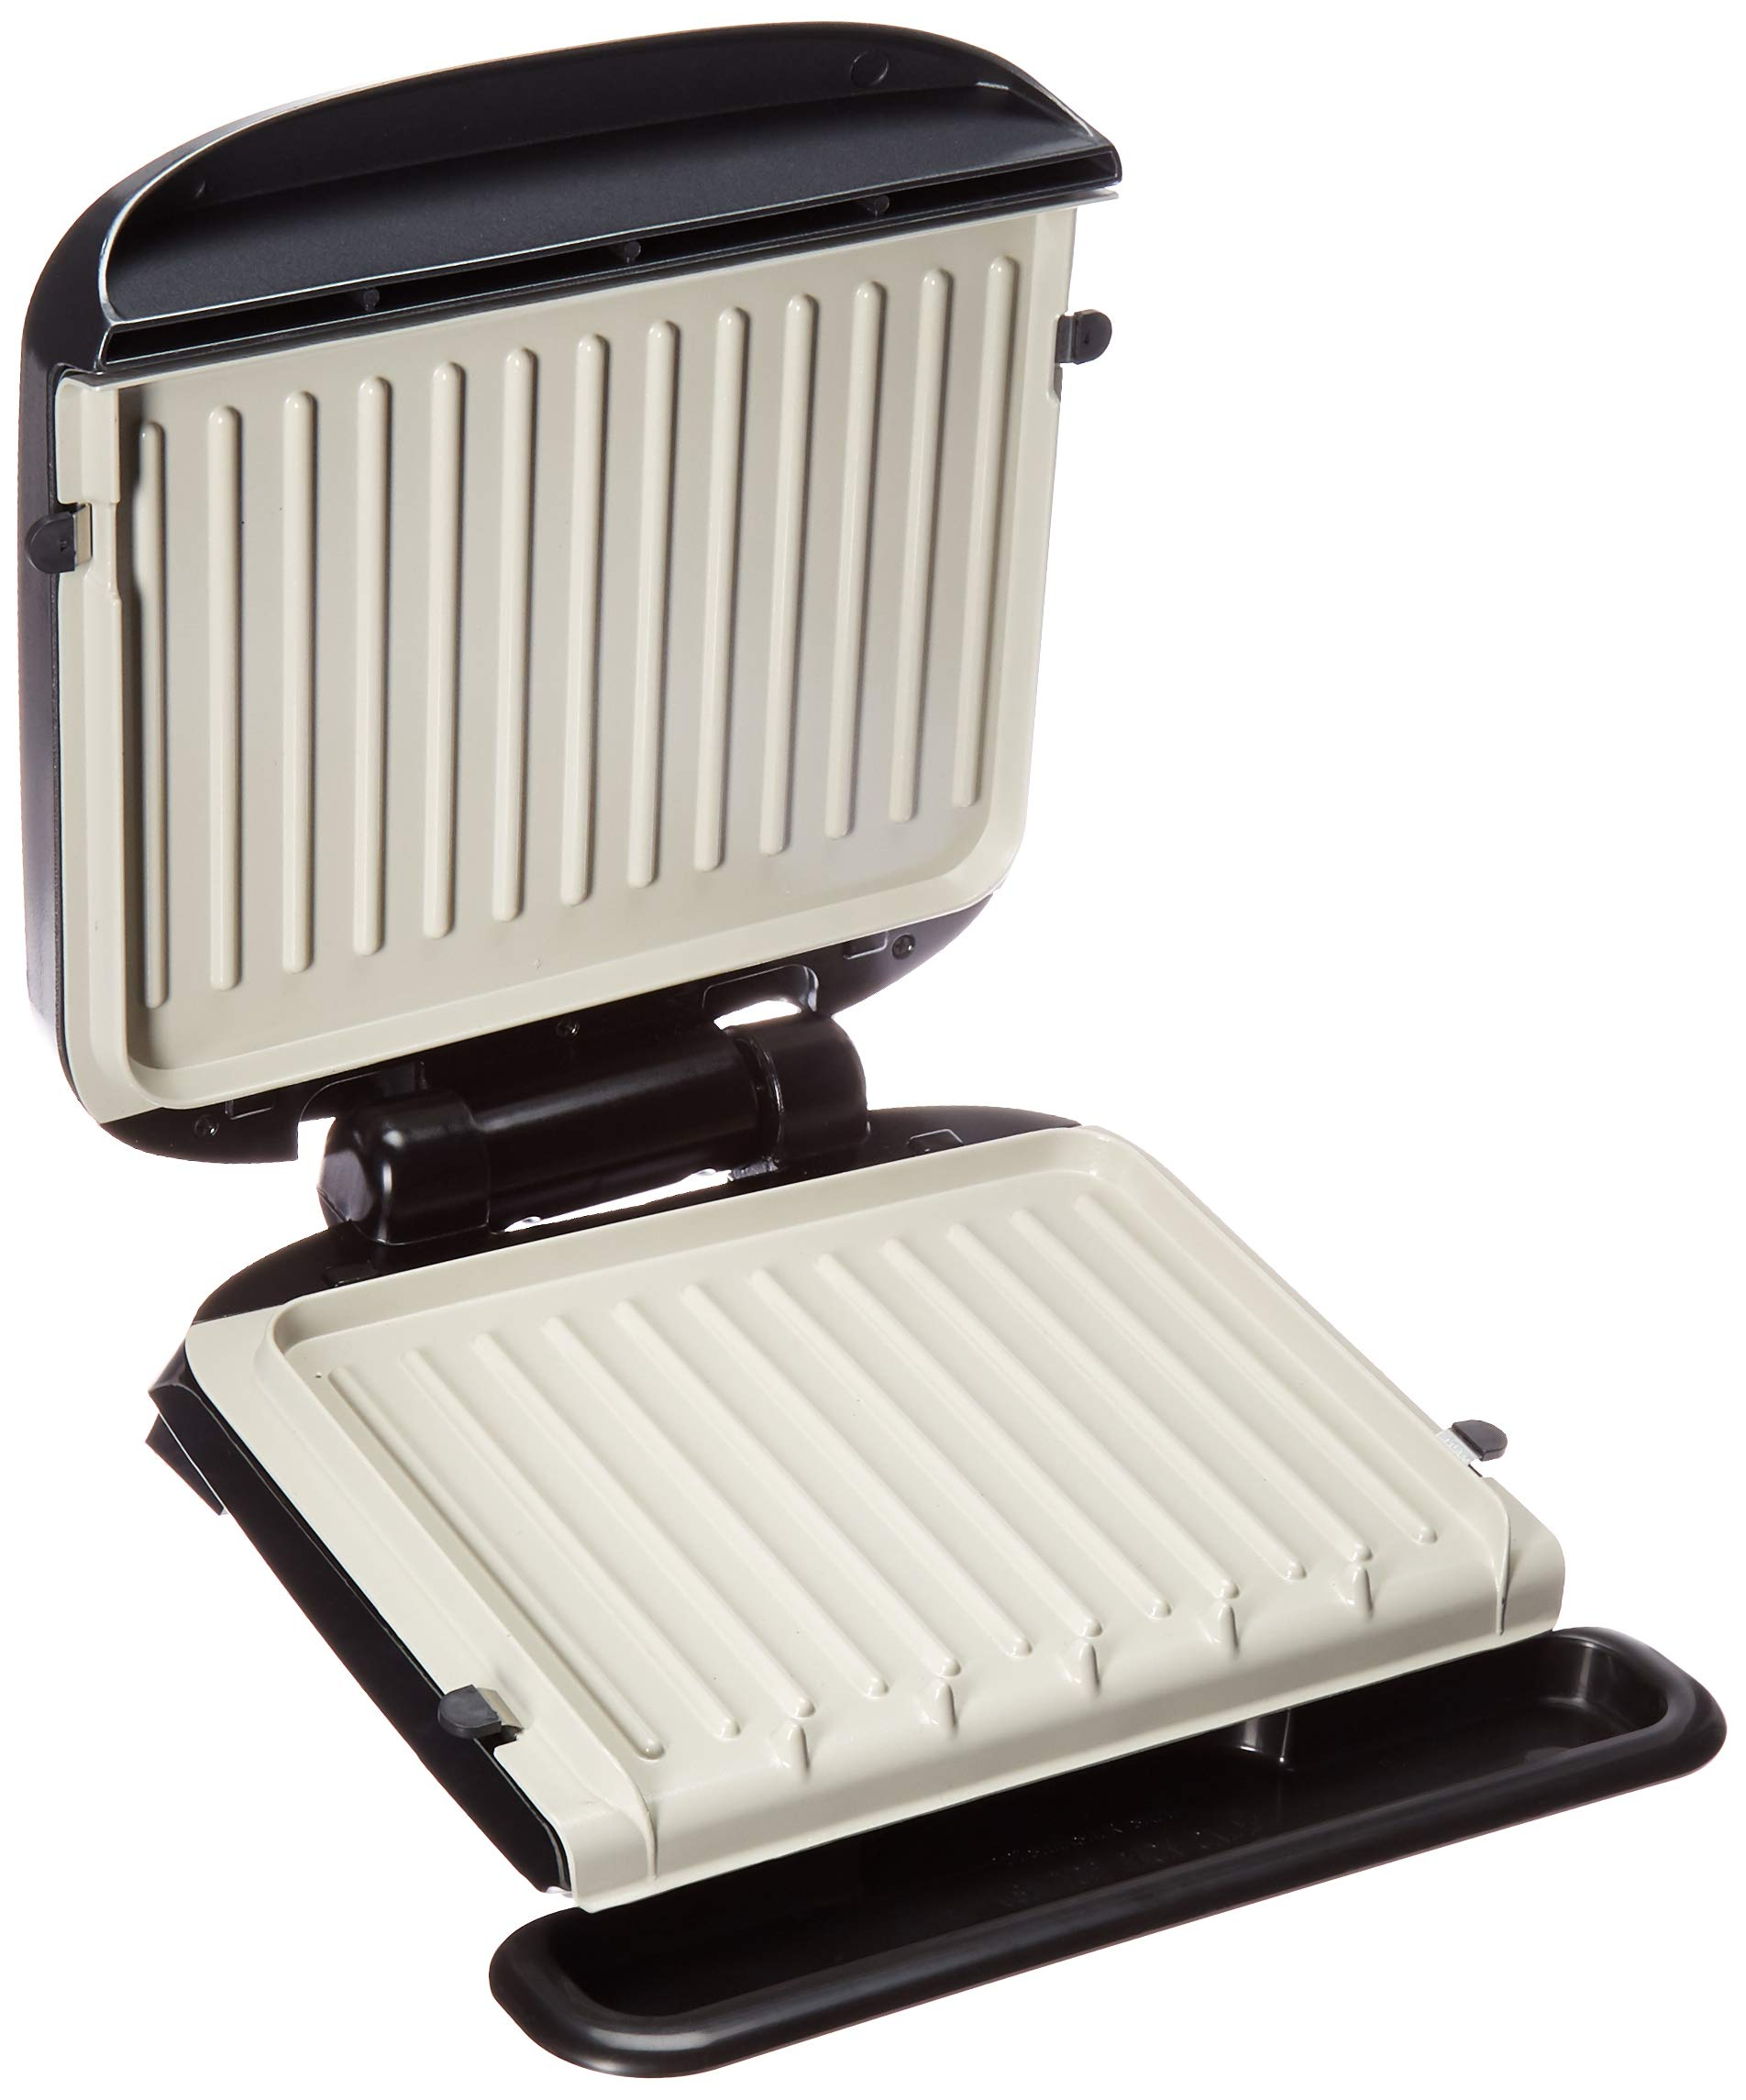 George Foreman GRP3260GM 4-Serving Removable Plate & Panini Digital Temperature-Black Indoor Electric Grill, 100 Square Inch, Silver by George Foreman